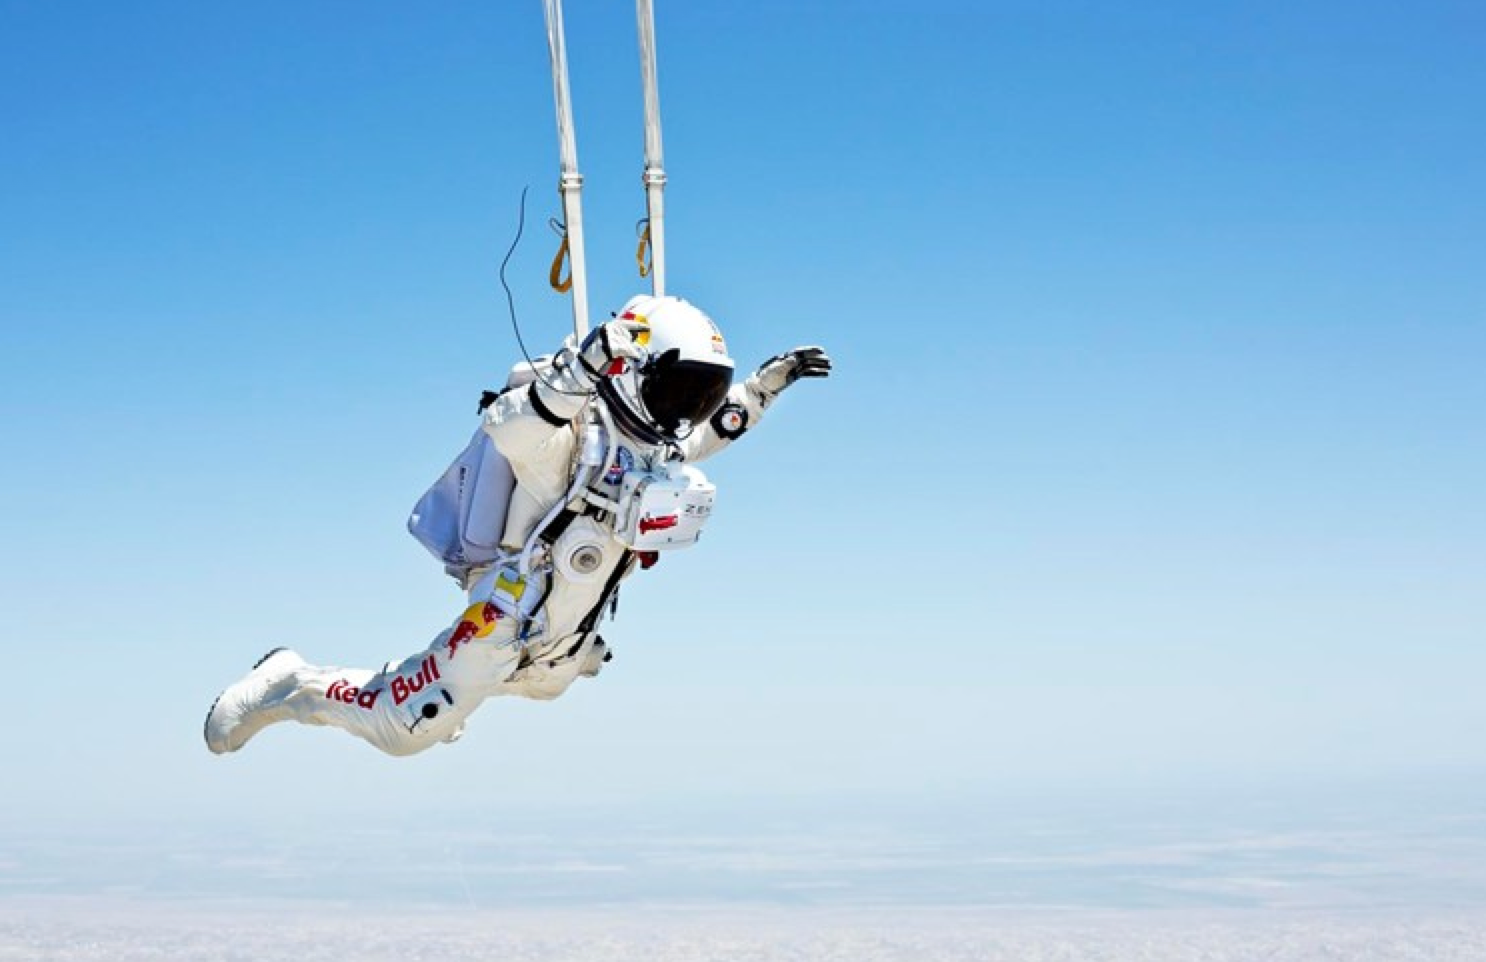 ballsiest man alive will jump out of the stratosphere in